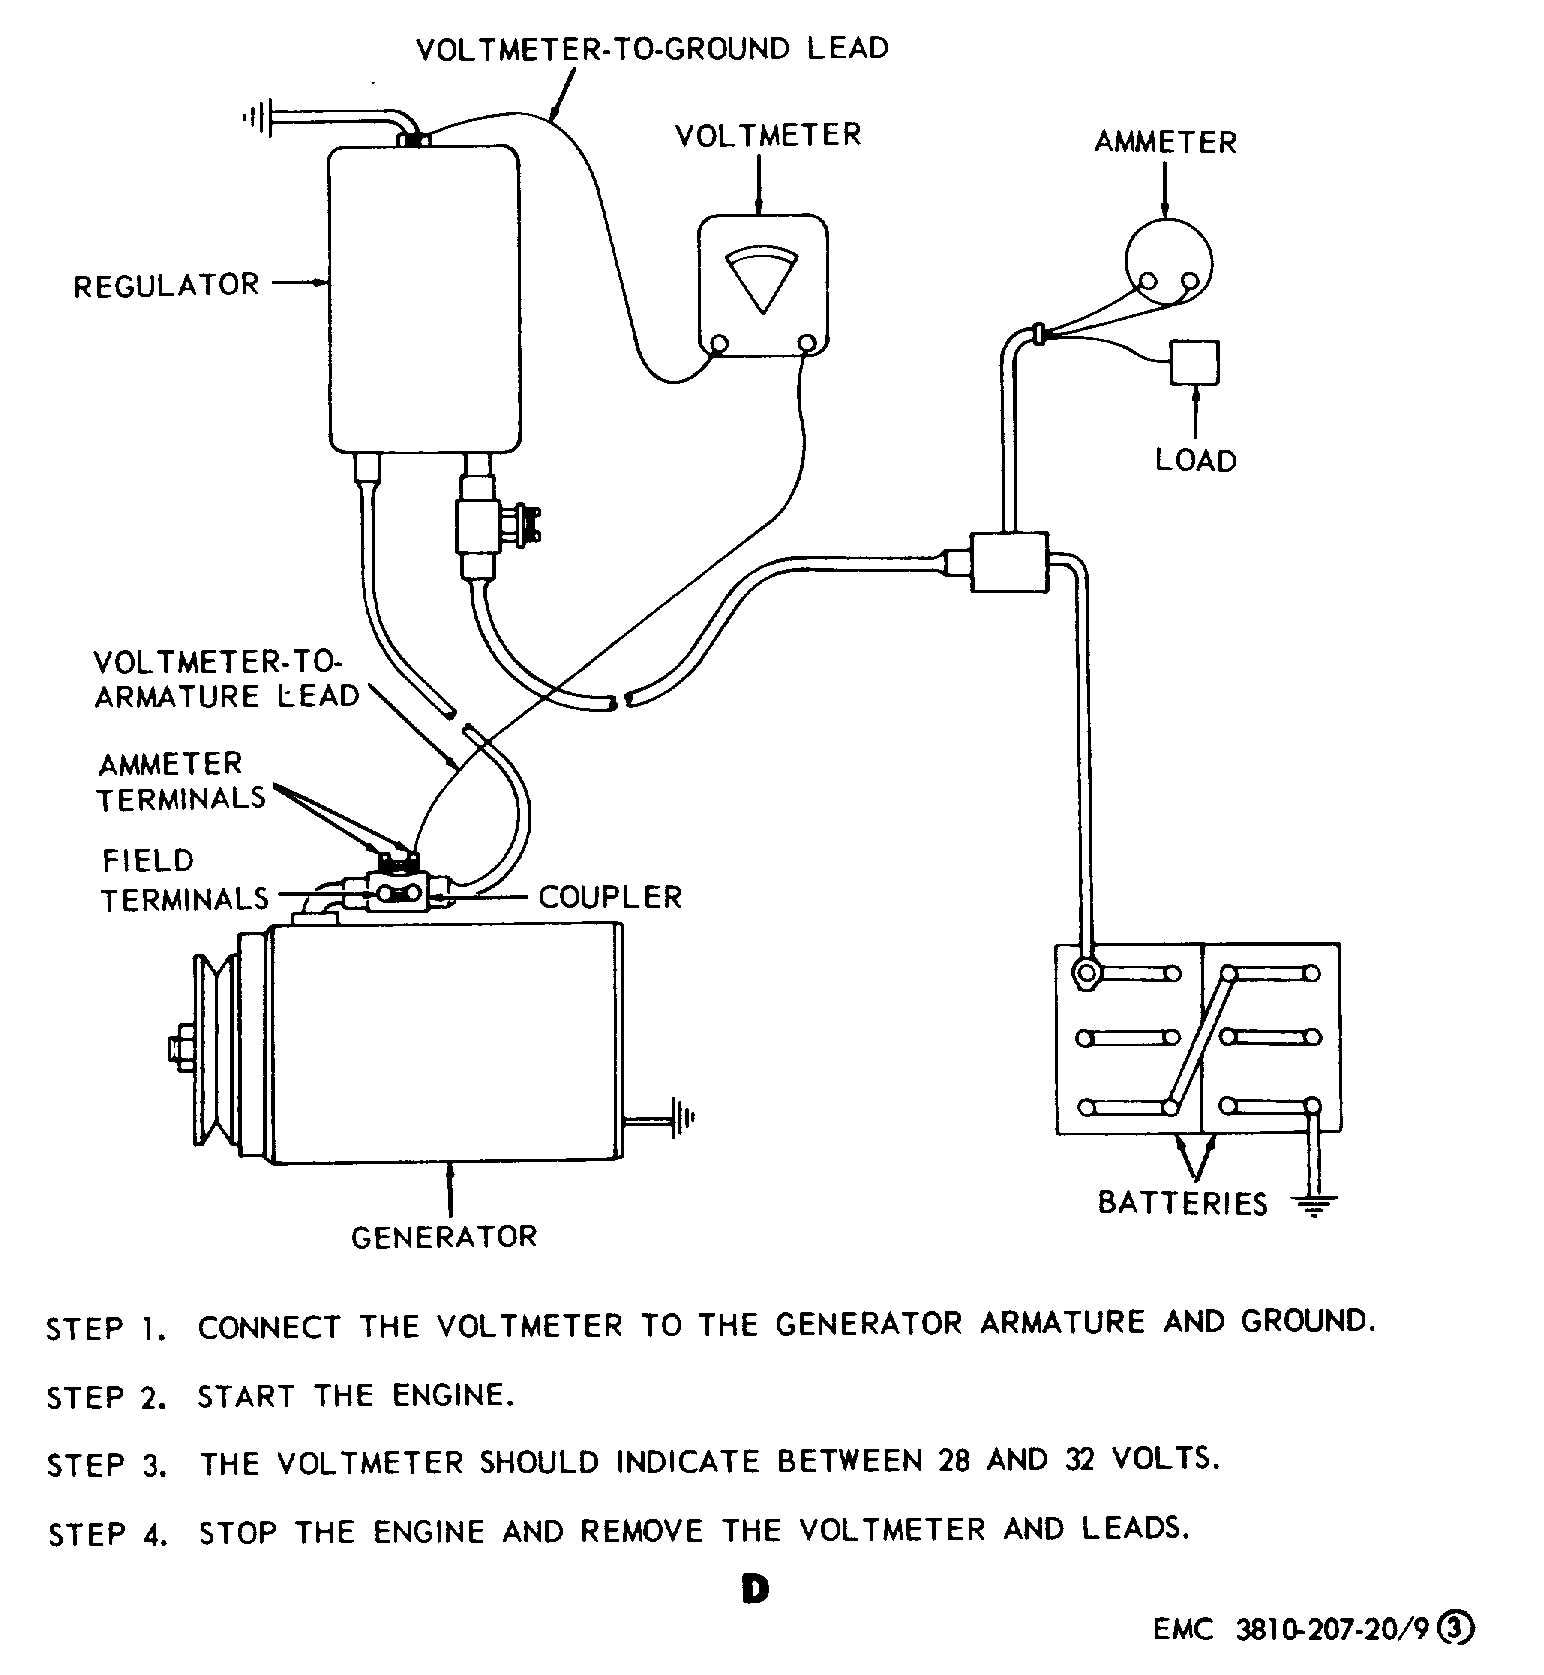 Generator Voltage Regulator Wiring Diagram Harley - Wiring Diagram on 1976 harley-davidson sportster wiring diagram, 1990 ford alternator wiring diagram, harley softail battery wiring, ford f150 headlight wiring diagram, 1974 ford f100 ranger fuse diagram, 1988 ford f-150 wiring diagram, harley-davidson starter diagram, 79 ford f-150 wire diagram, 1978 f150 wiring diagram, hd fld electrical diagram, harley voltage regulator, 1983 f250 voltage regulator diagram,